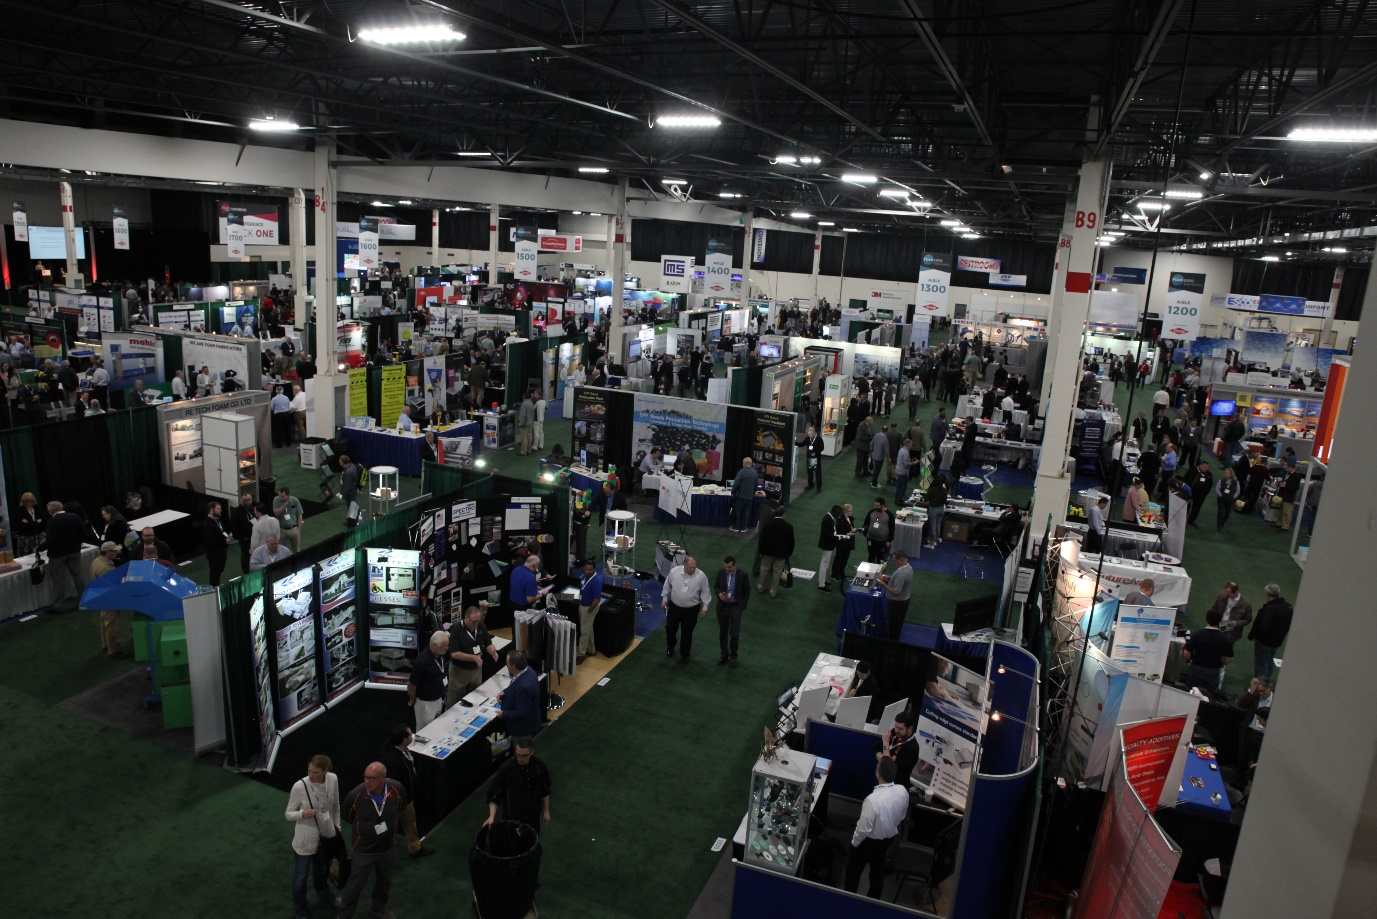 Foam Expo North America is a meeting place for the manufacturers, suppliers and buyers of technical foam products and technologies. (Source: Smarter Shows)